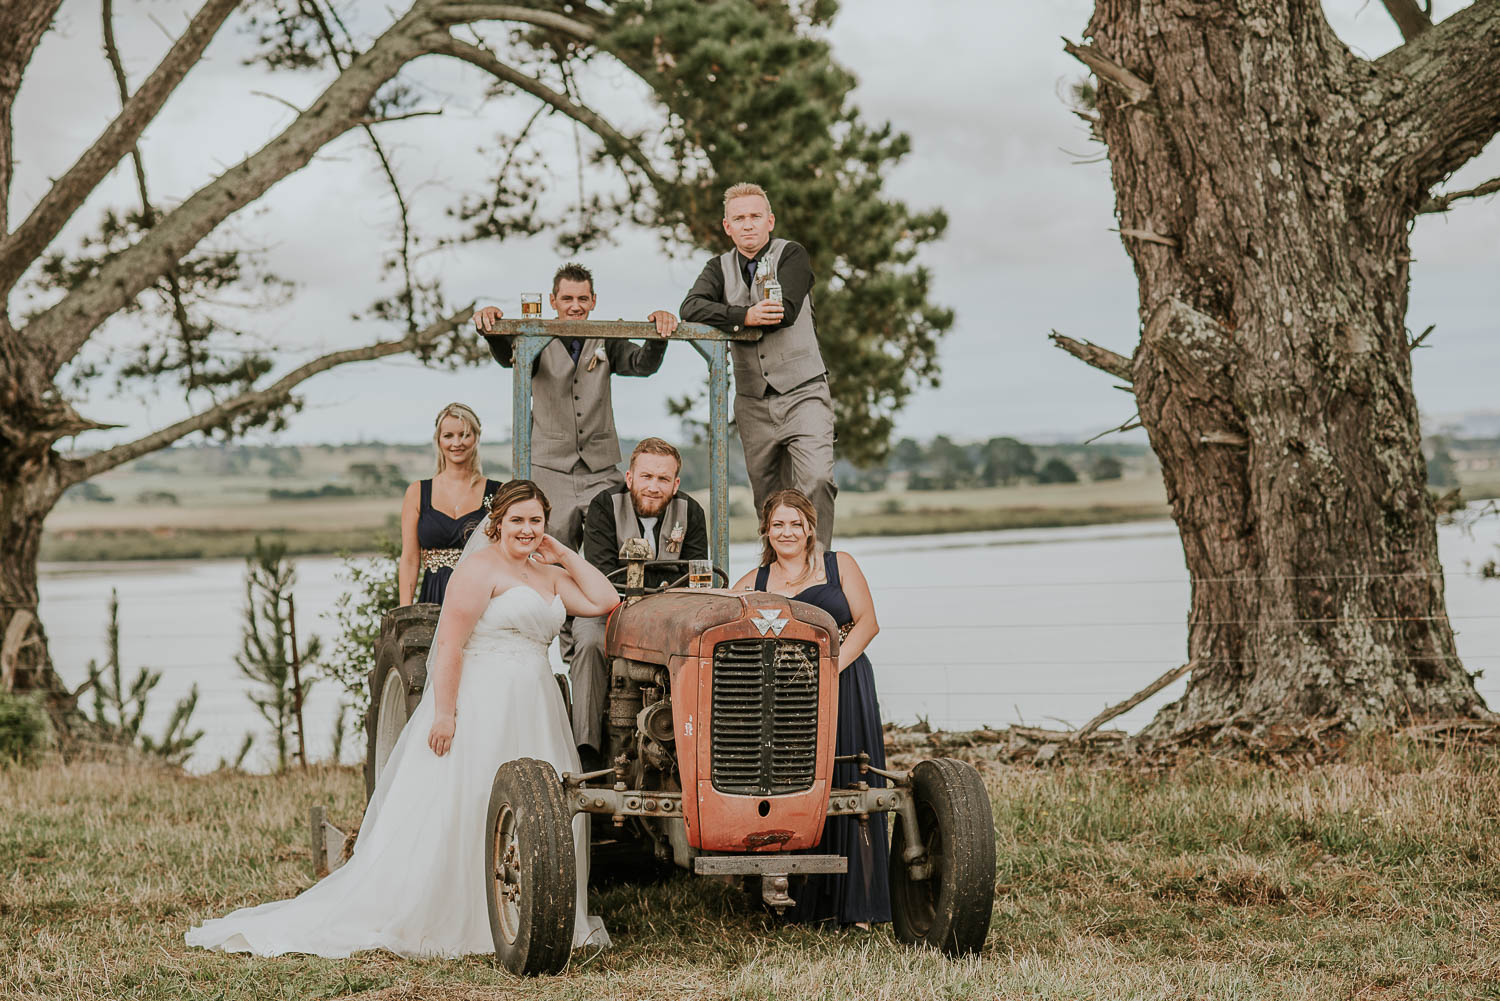 David-Alysha-Farm-Rustic-Auckland-Wedding-46